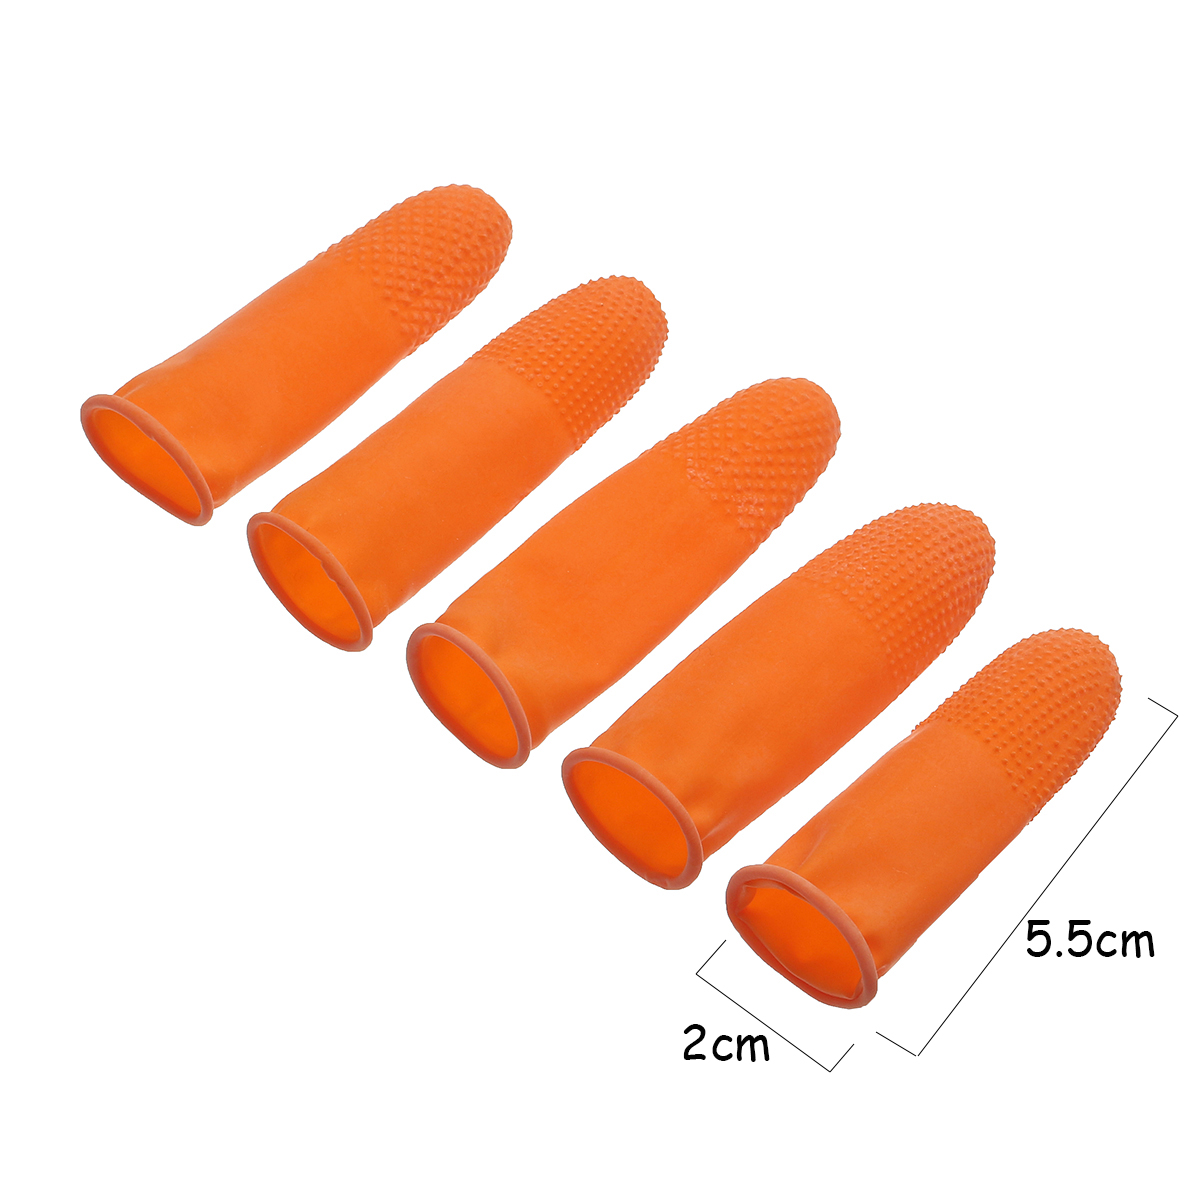 10pcs Protective Anti-static Fingertips Rubber Gloves Finger Cots